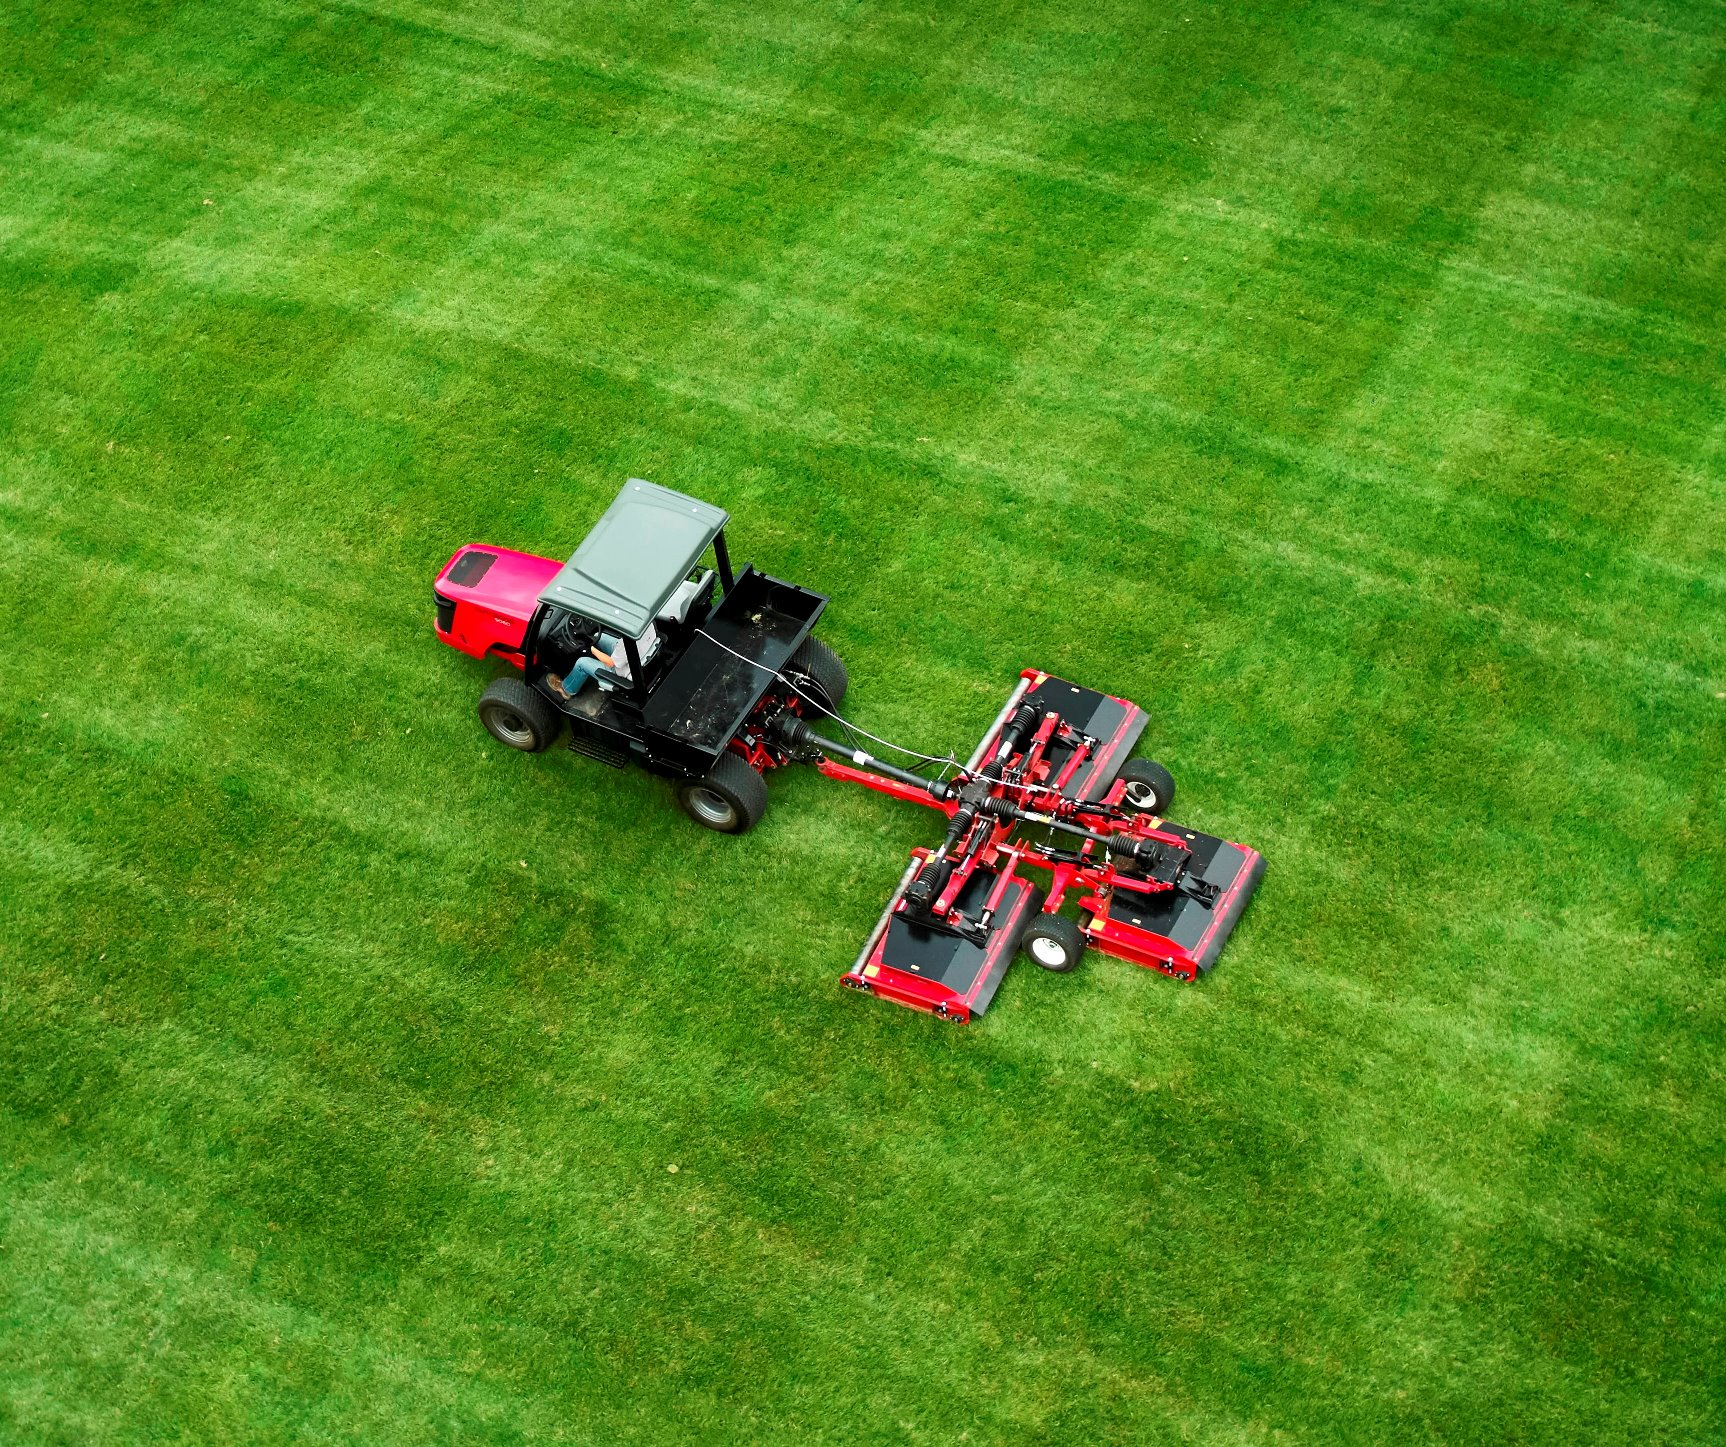 Introducing the Groundsmaster® 1200 Pull-Behind Rotary Mower